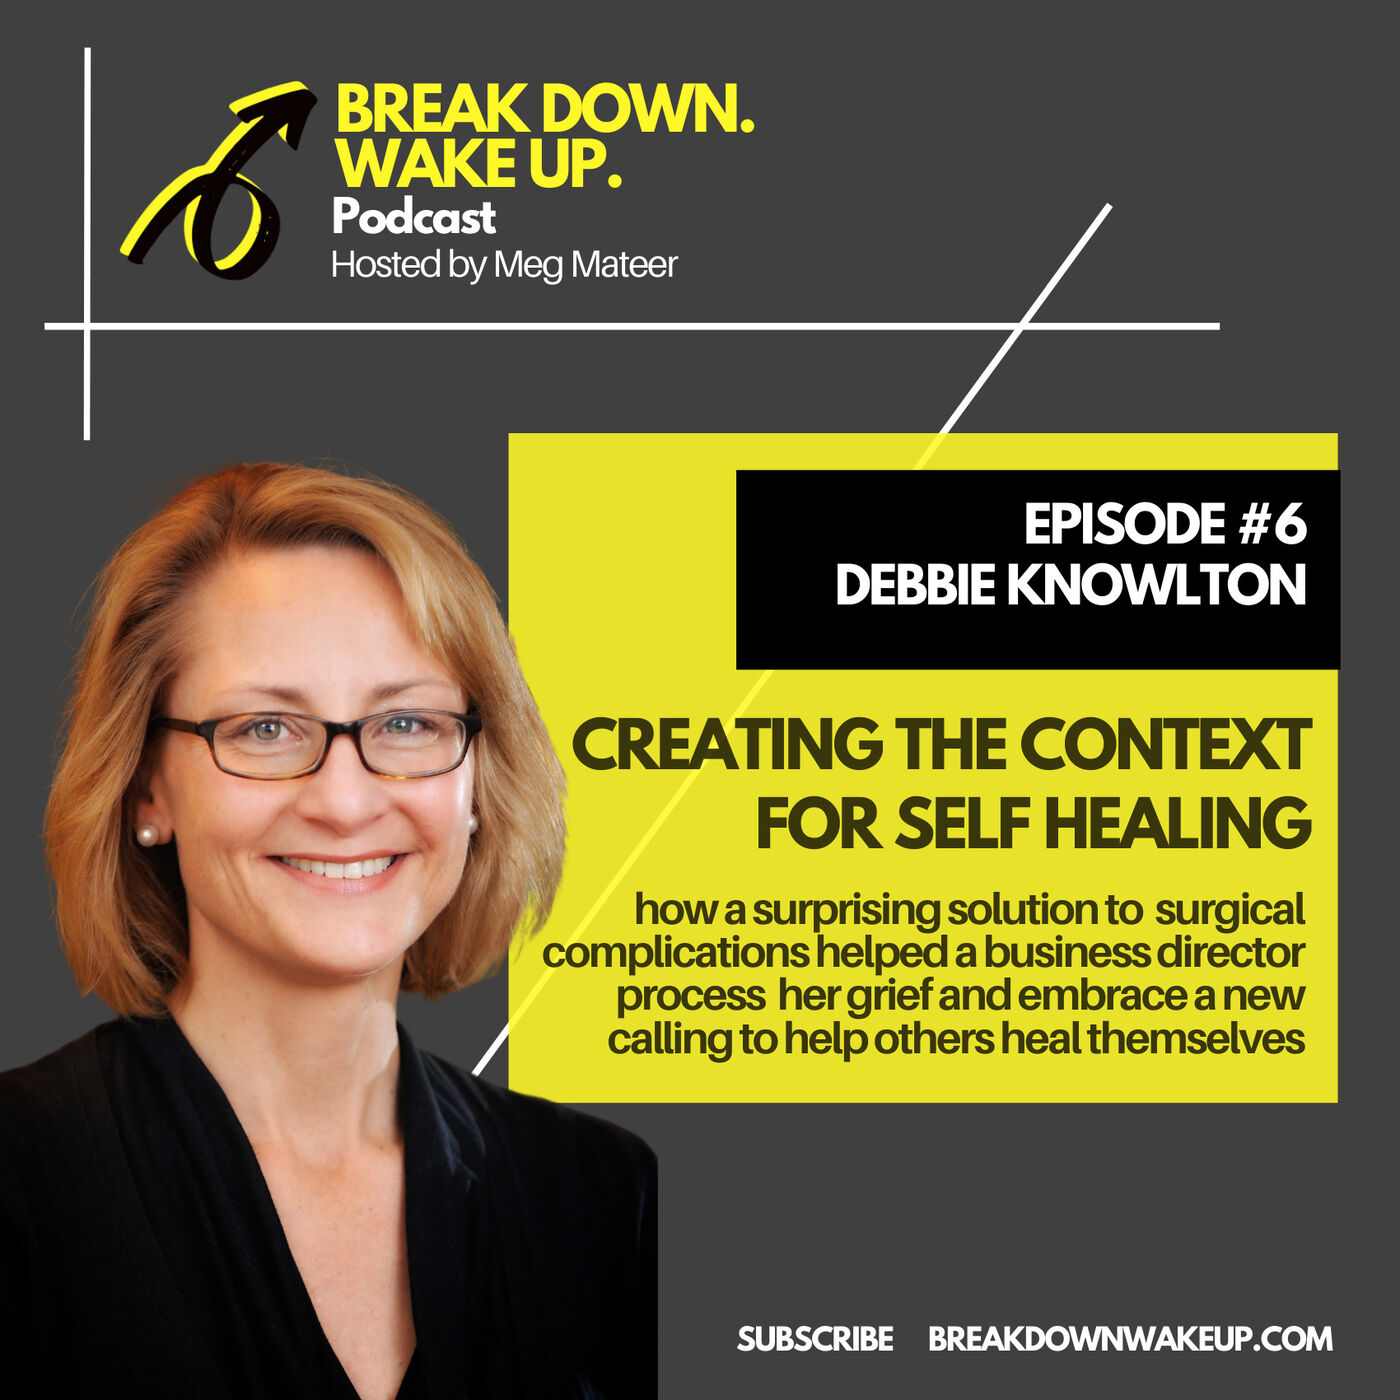 006 - Creating the context for self healing with Debbie Knowlton